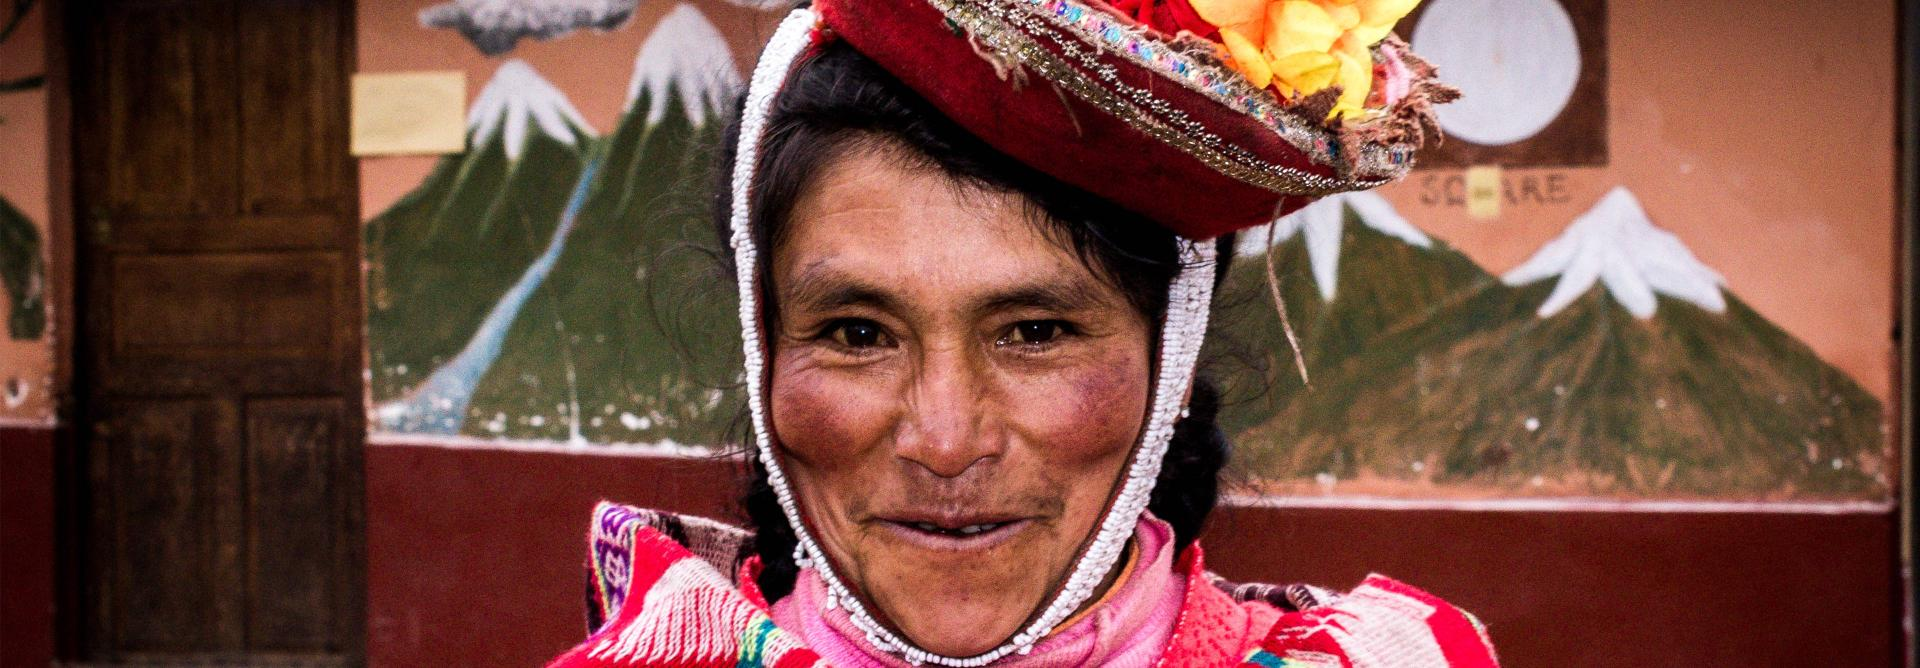 Trek to Machu Picchu woman